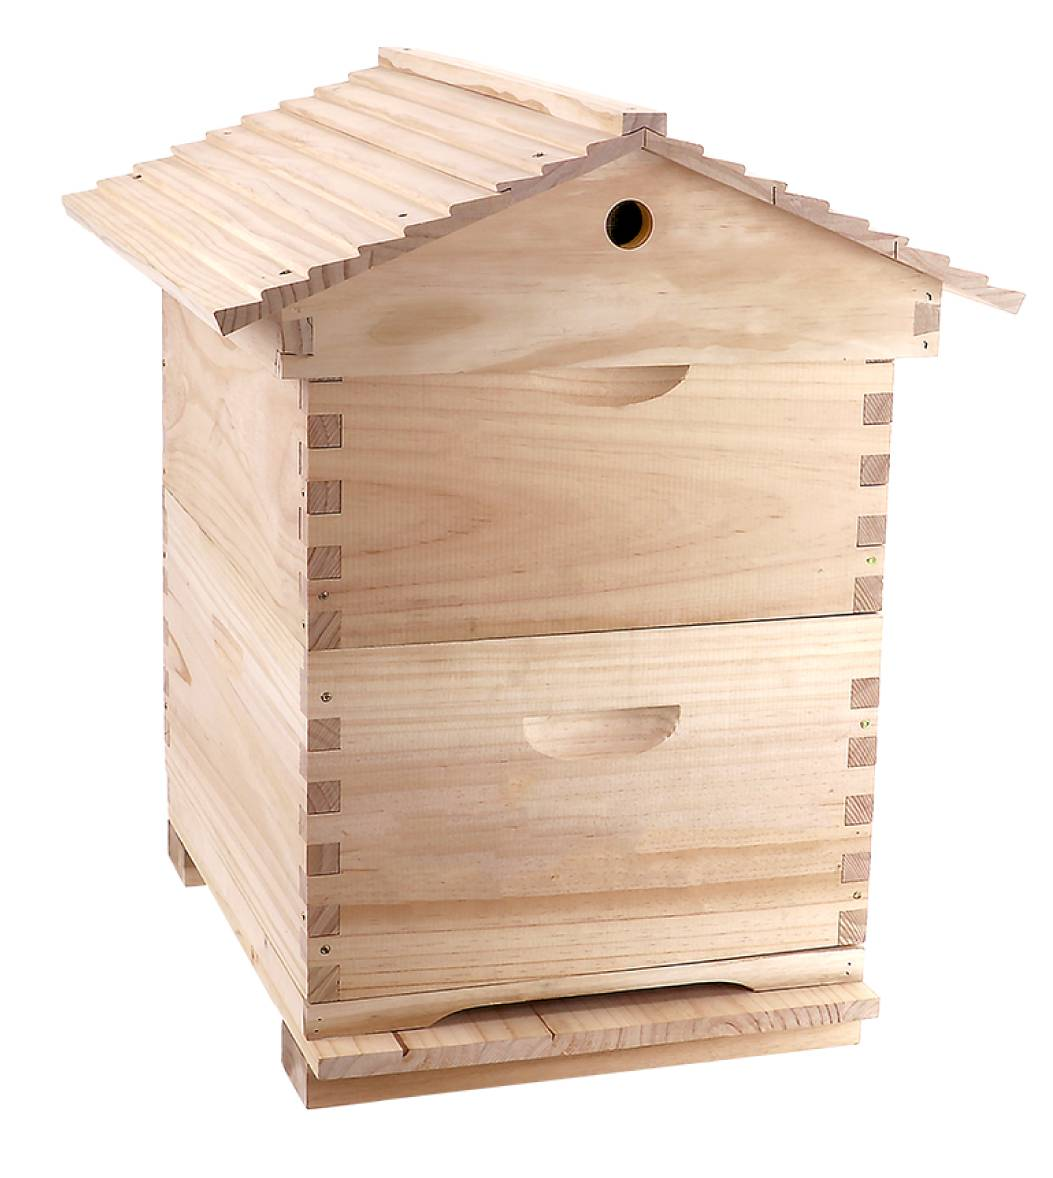 17 in 1 Gabled Roof Double Level Hive and Mesh Base Beetle Draw Deluxe Beekeeping Kit - 10 Frame Size